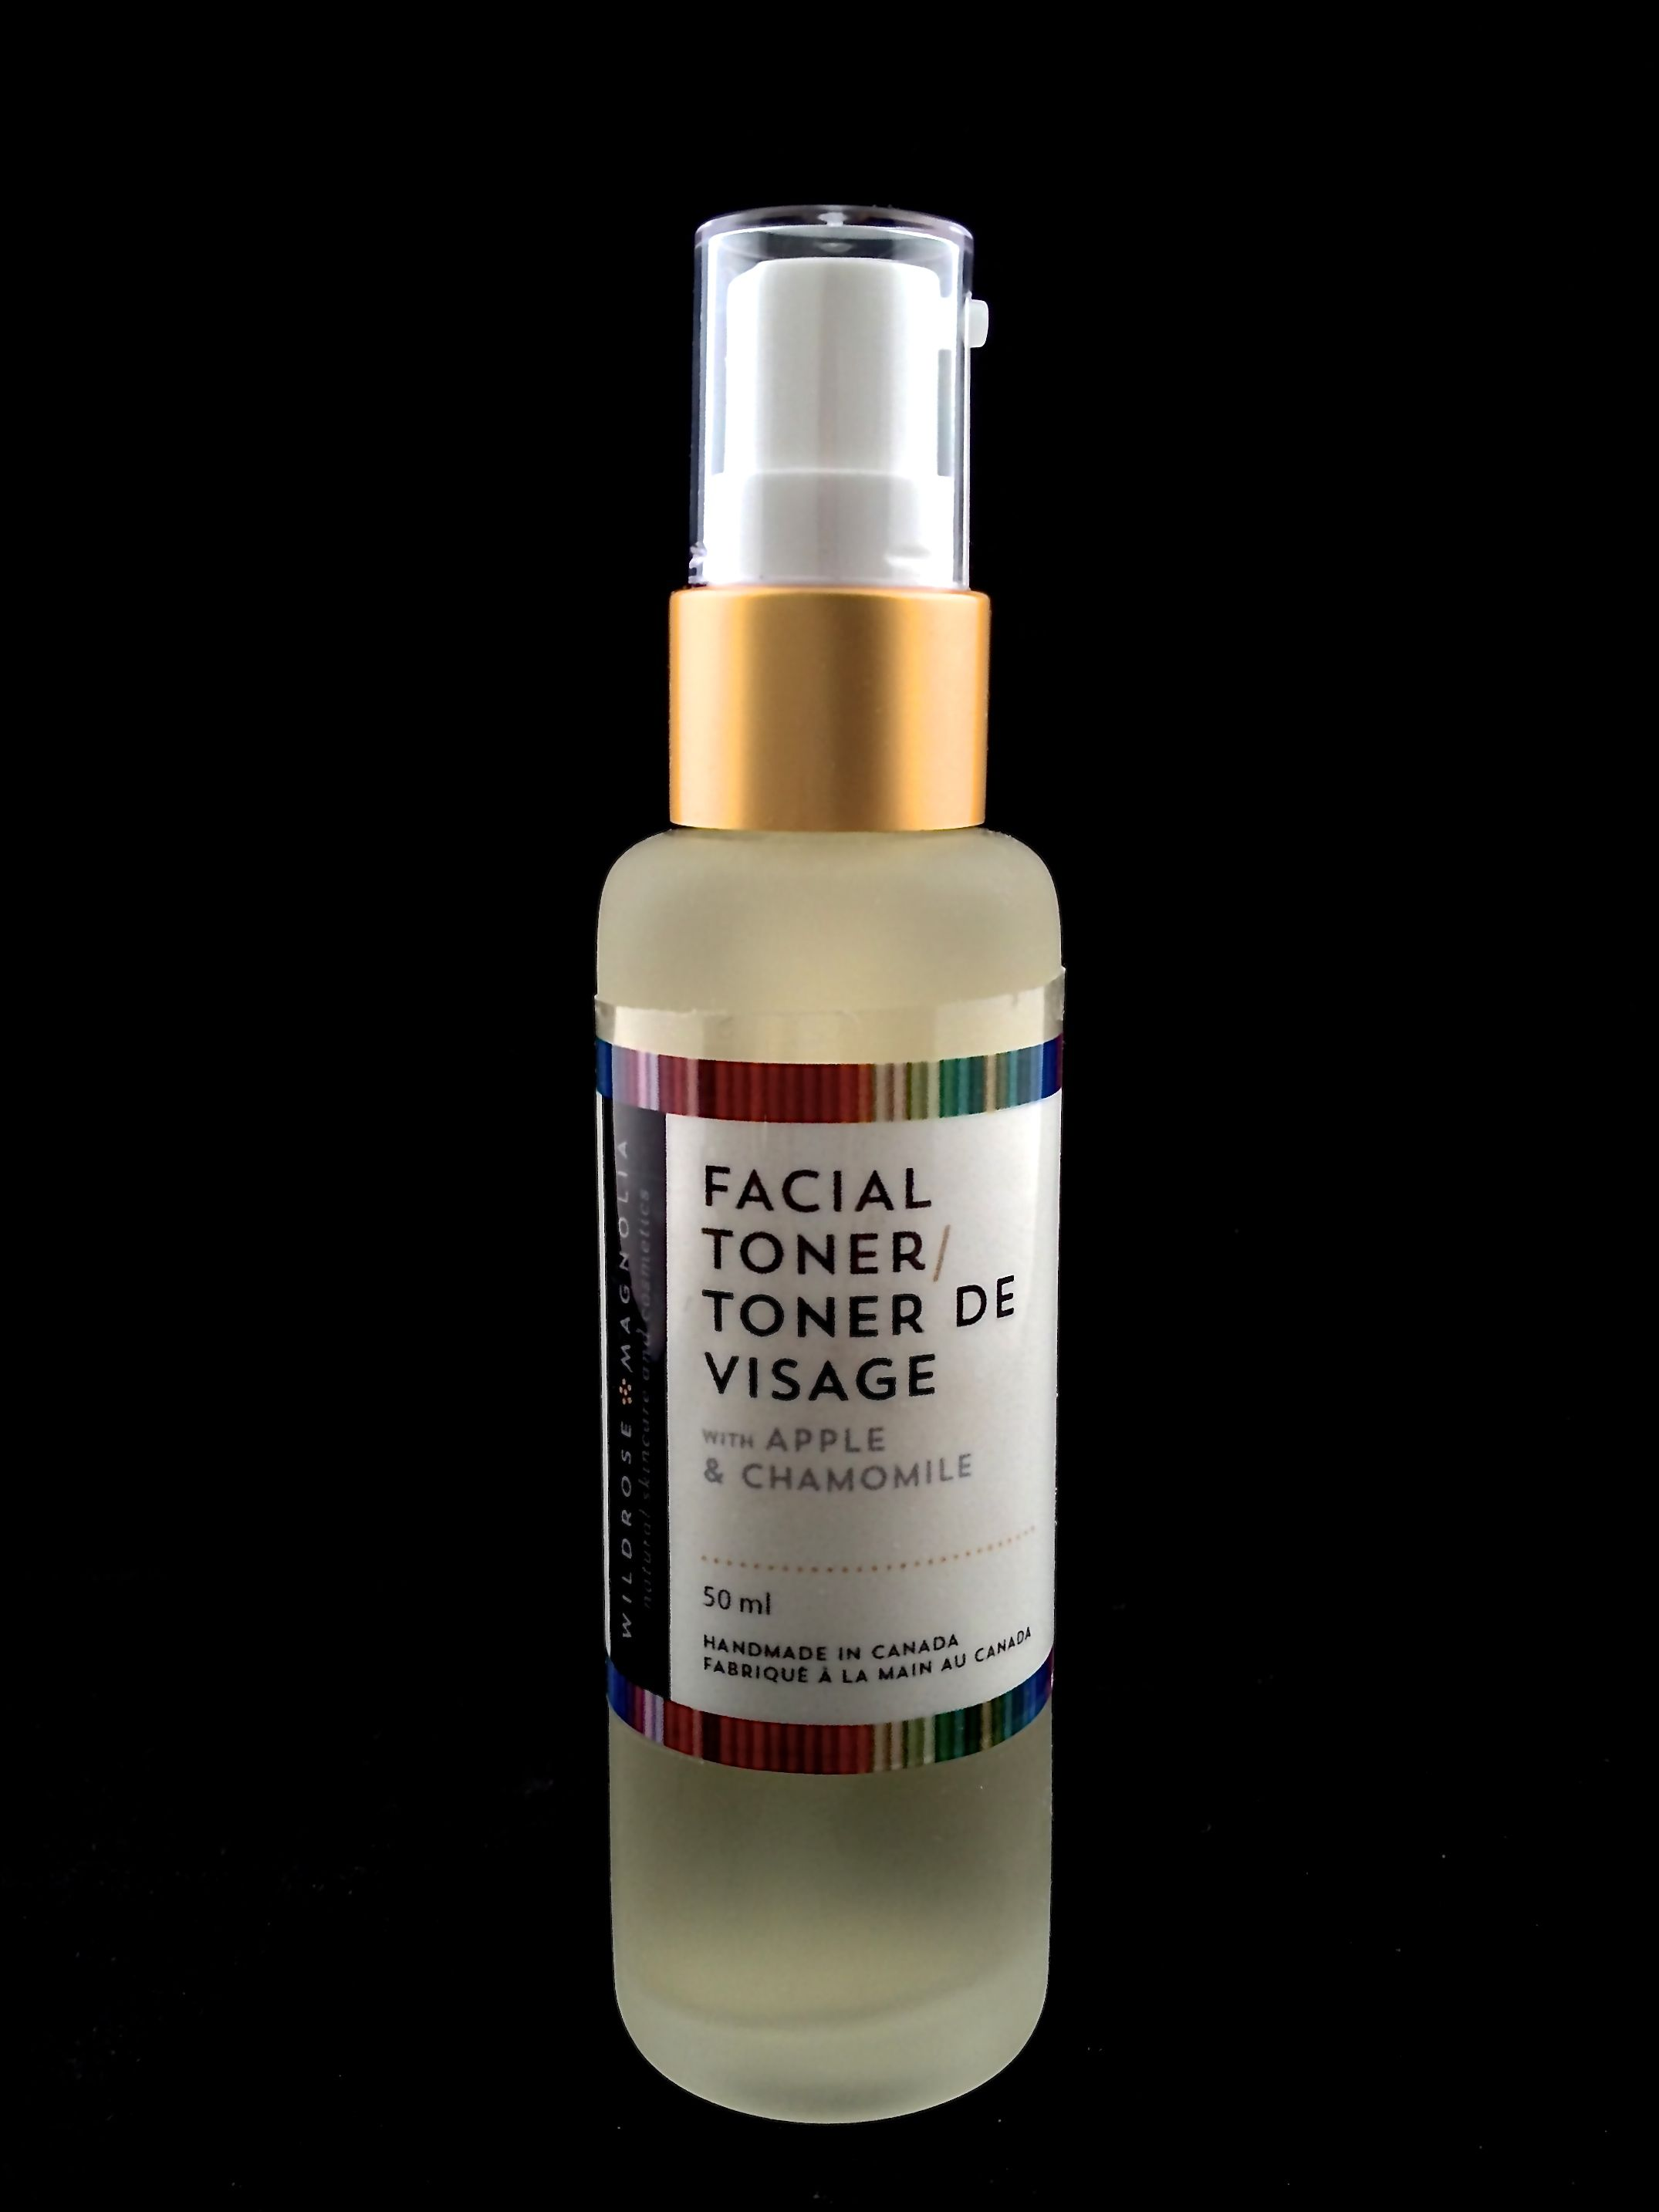 Apple and Chamomile Toner Alpha hydroxy sourced from